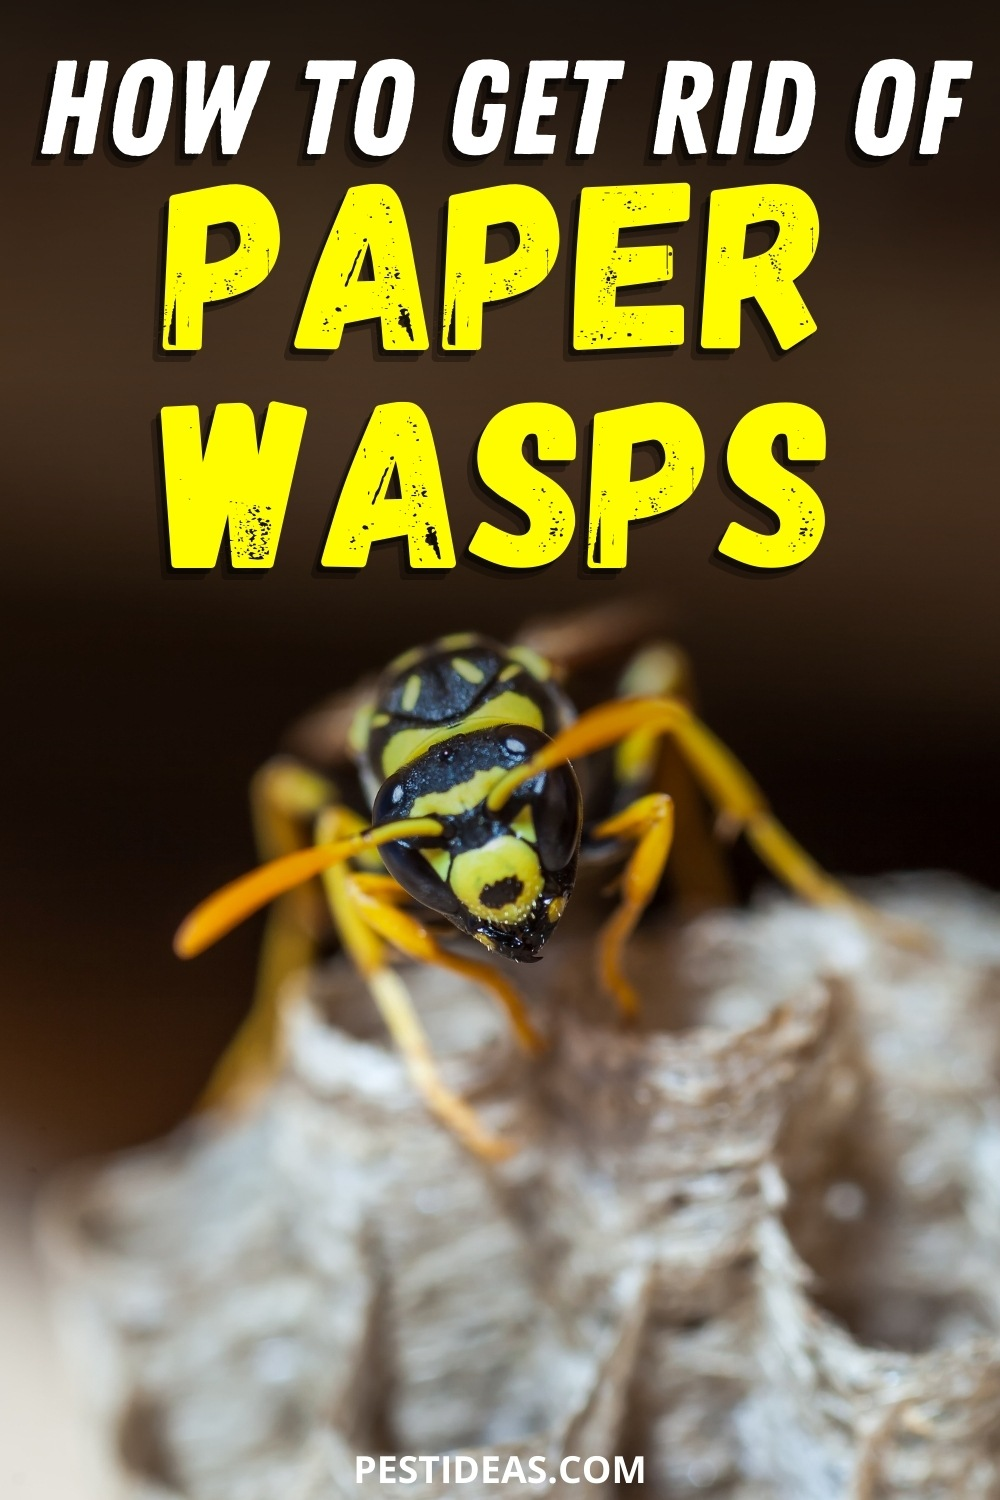 How to get rid of paper wasps